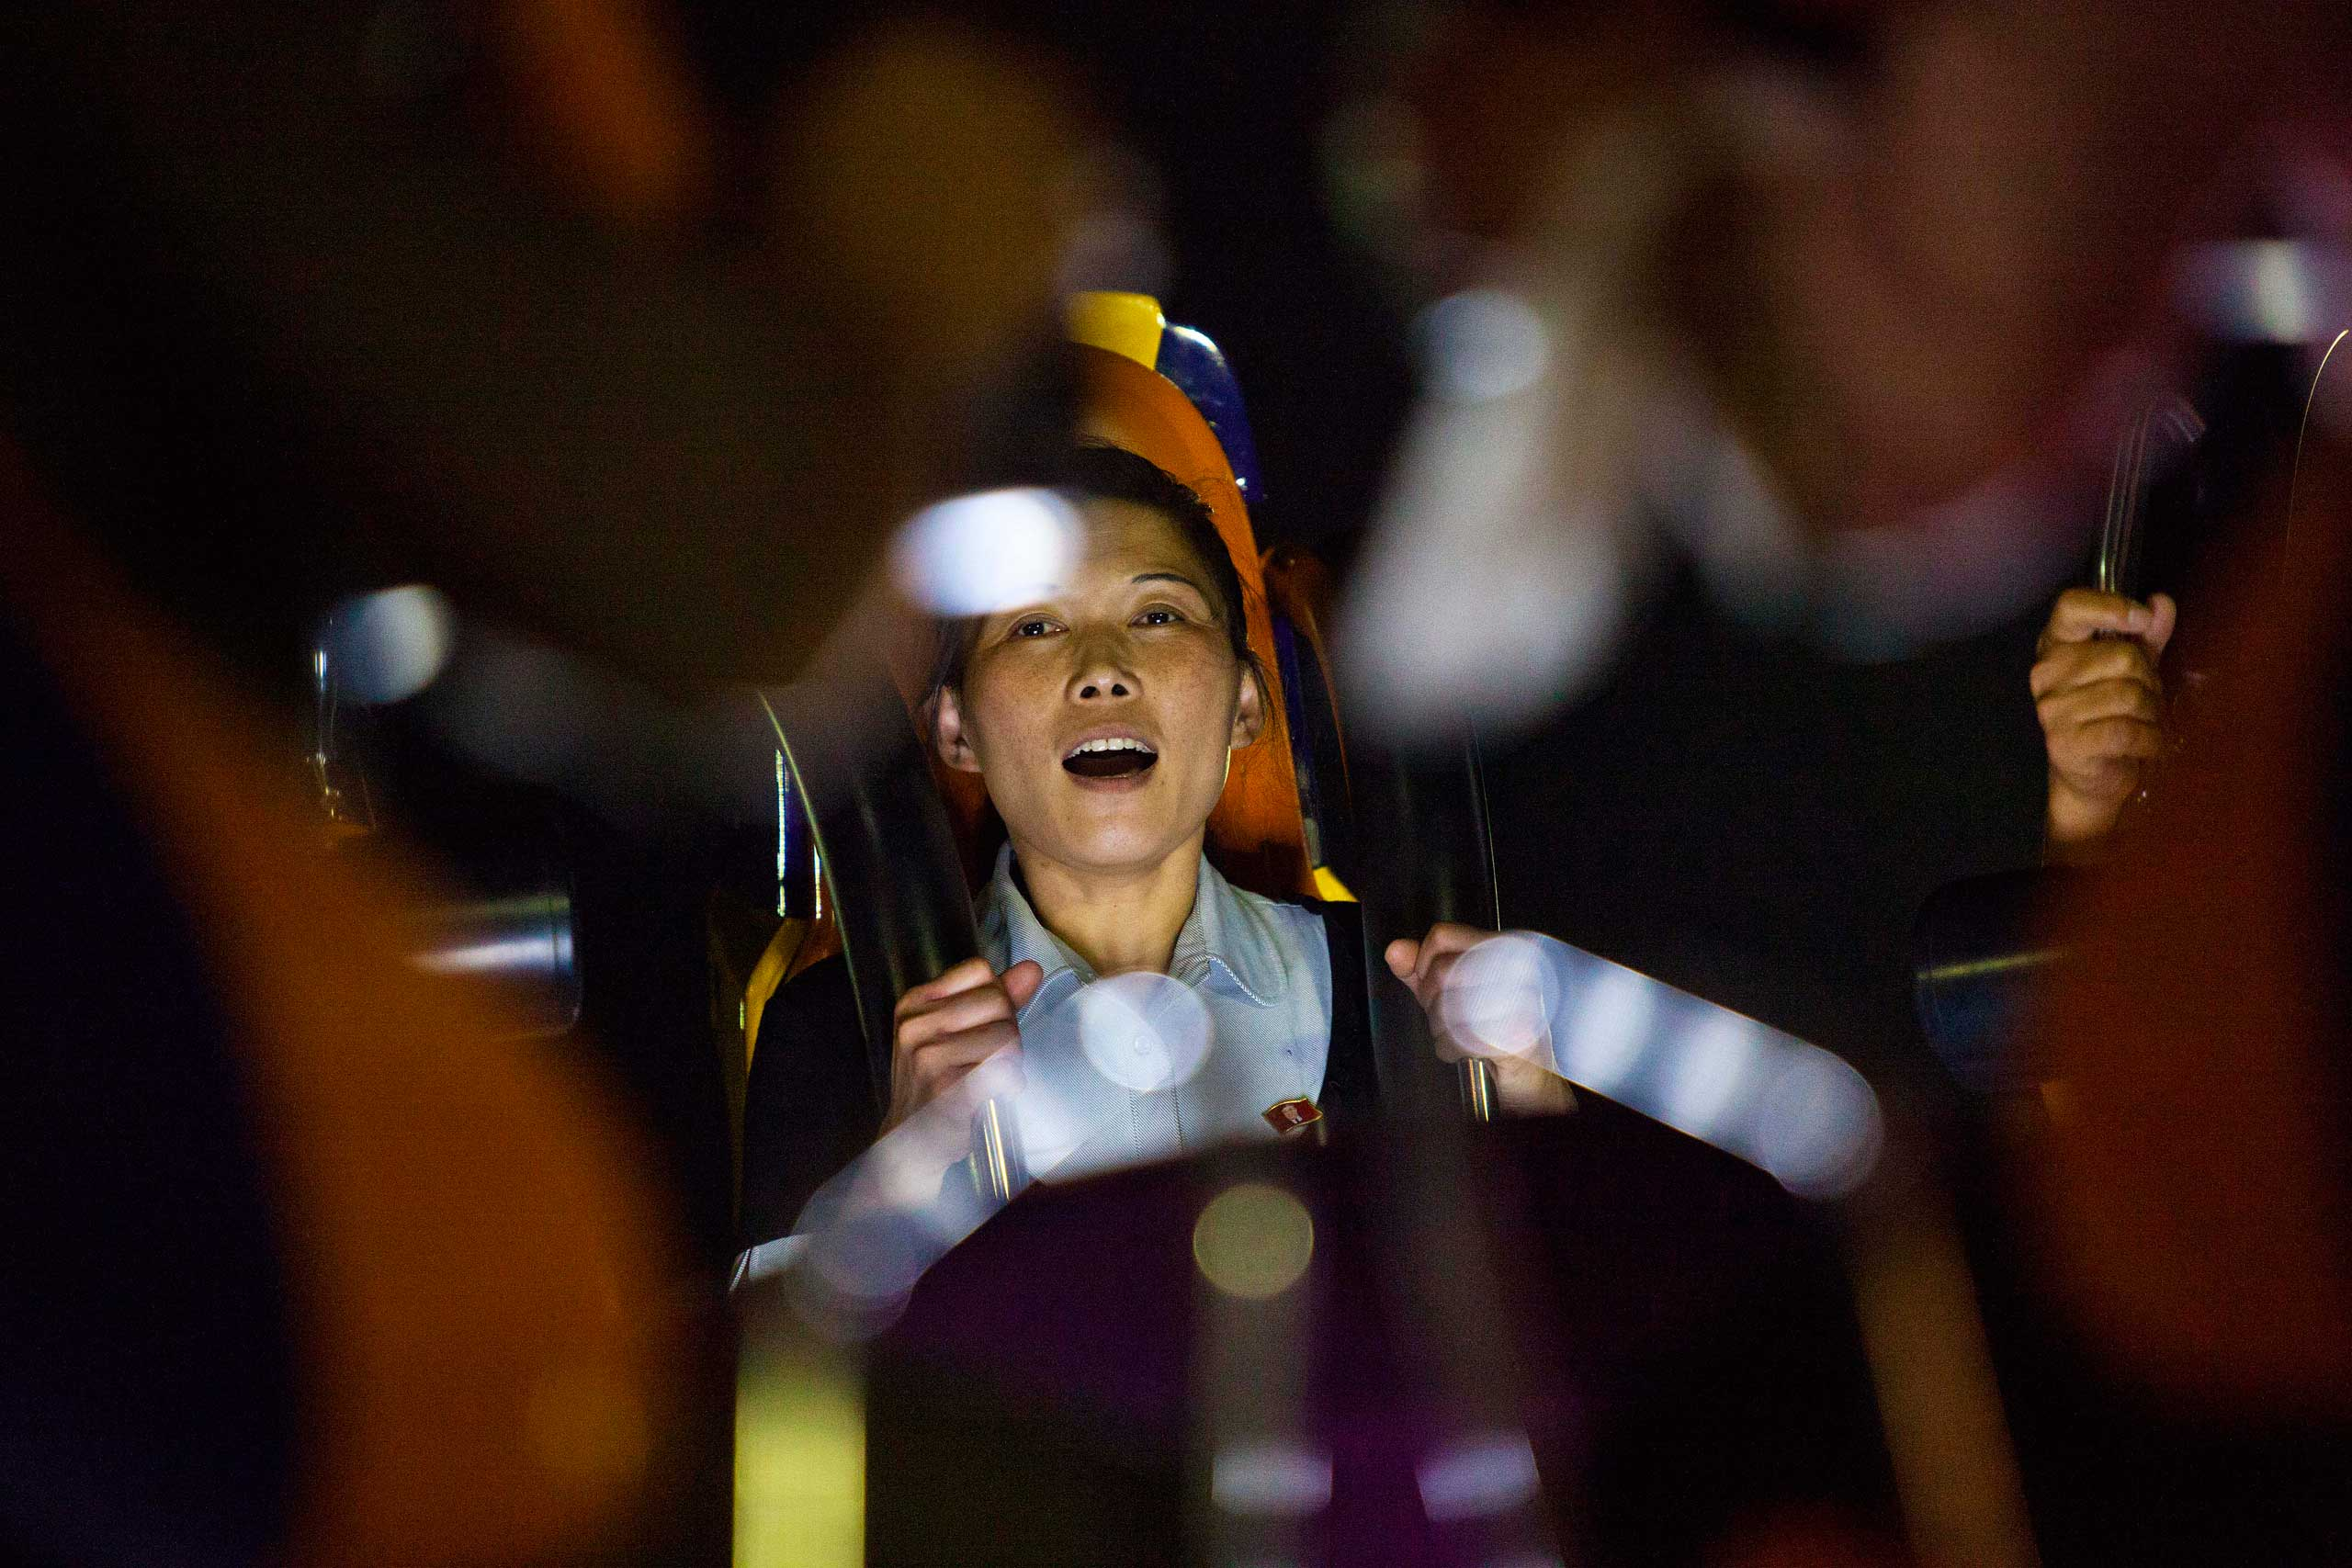 Aug. 8, 2012. A woman rides a roller coaster at a newly-built amusement park in Pyongyang, North Korea.